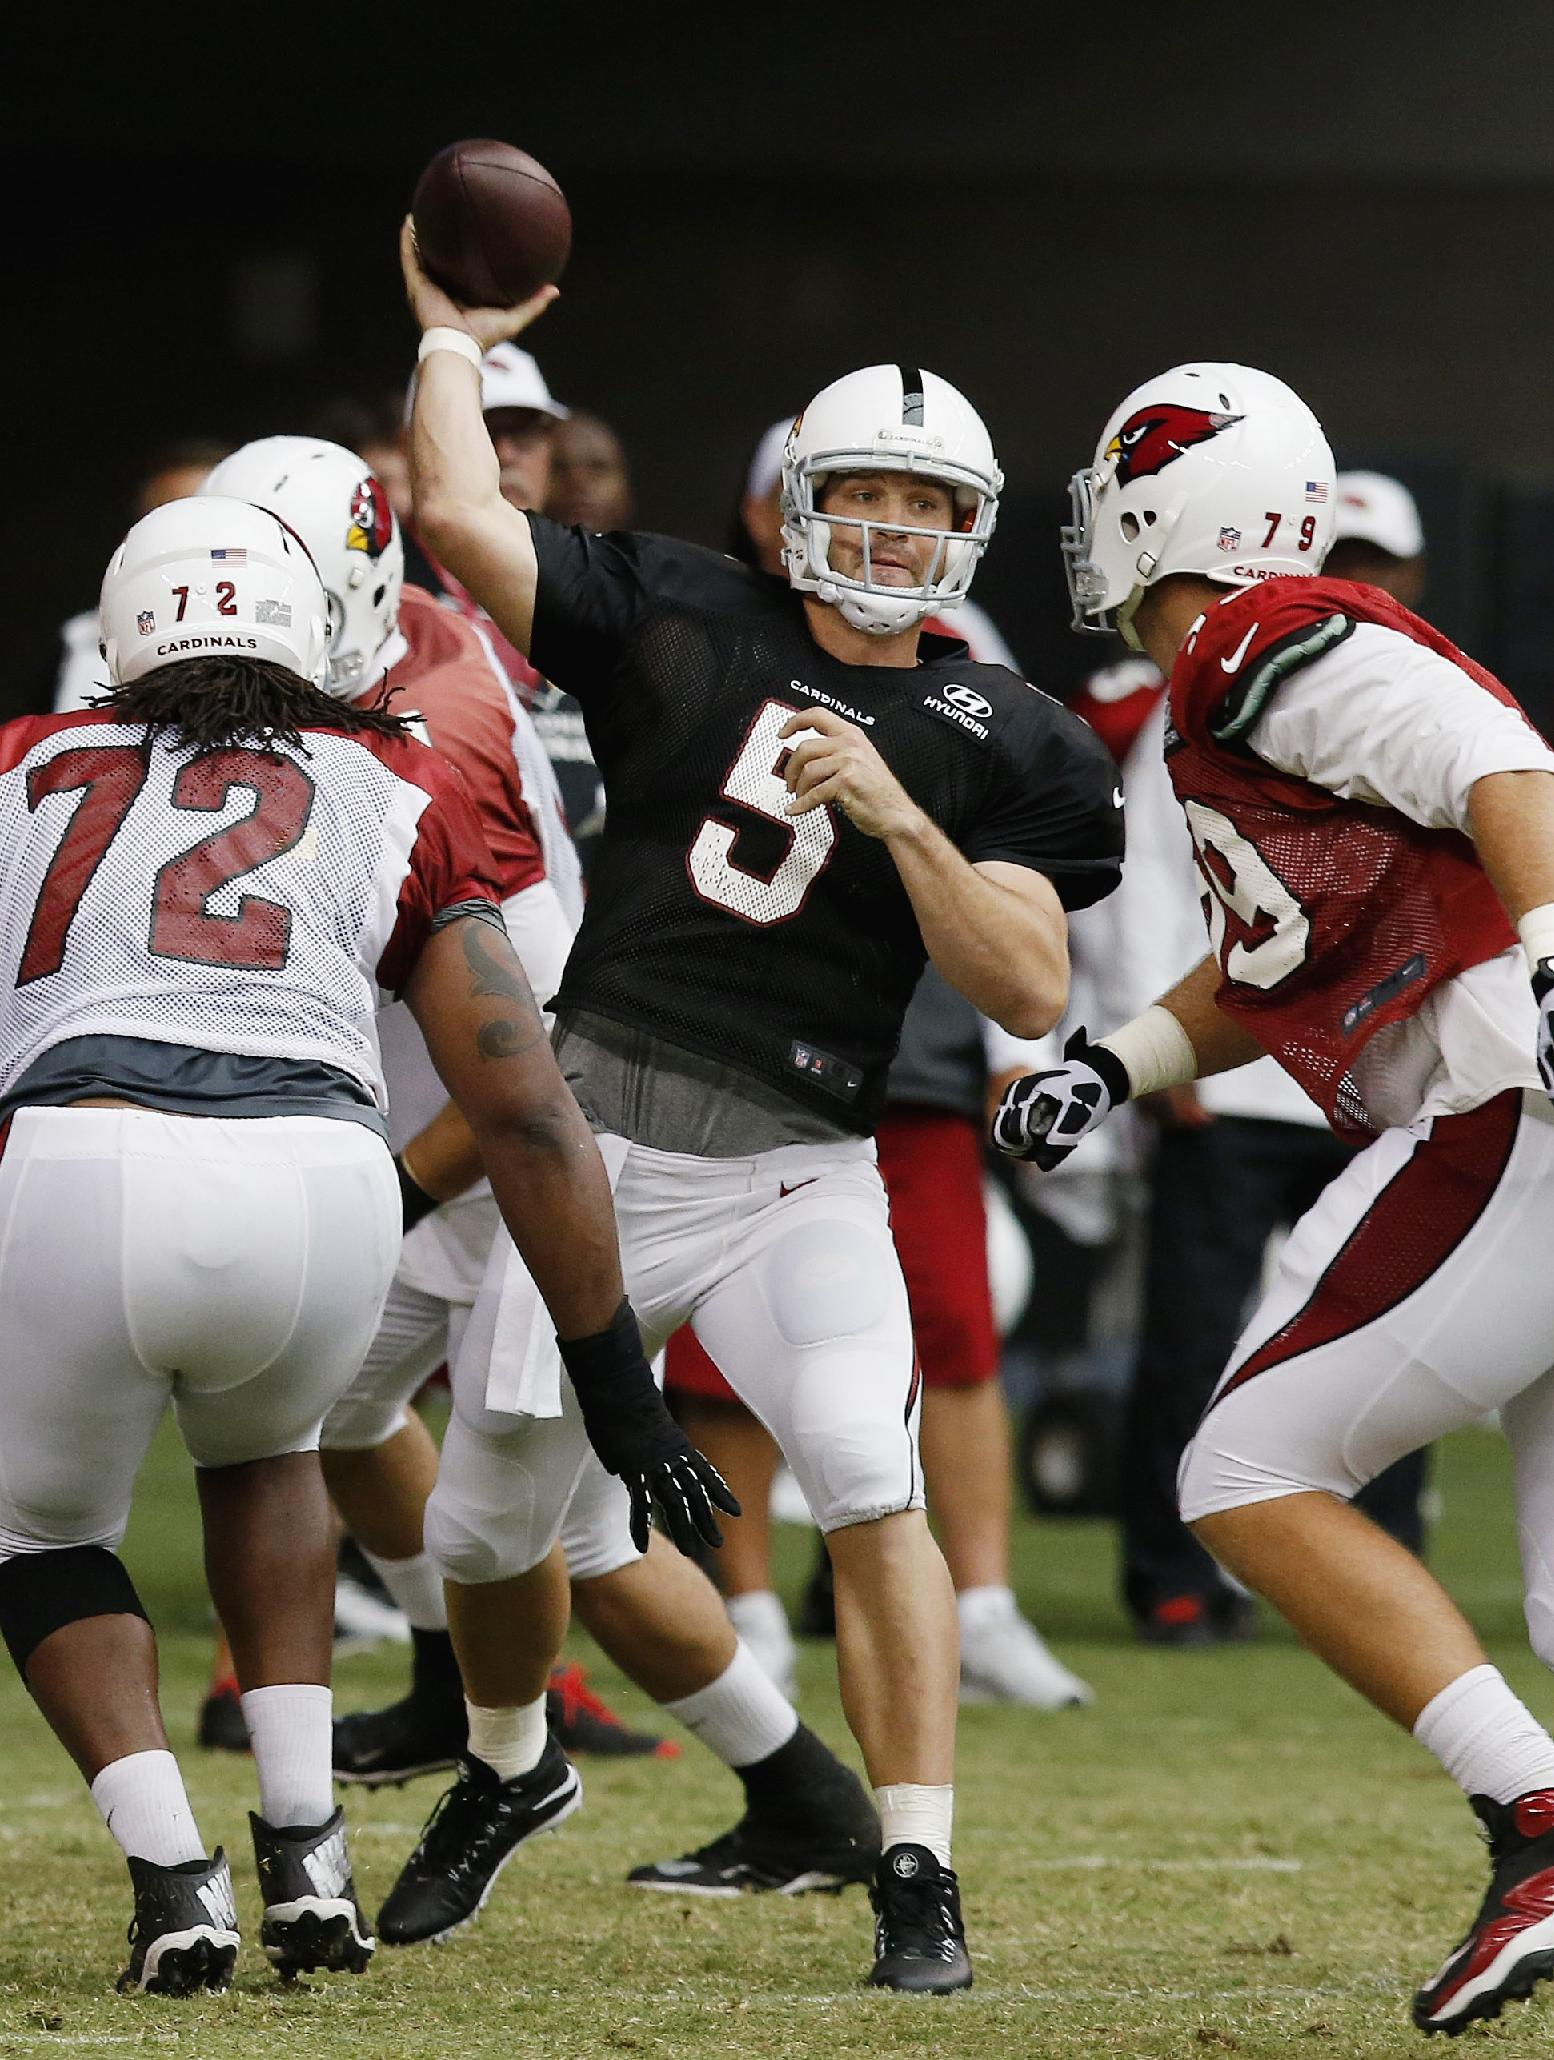 Arizona Cardinals' Drew Stanton (5) makes a throw as Ed Stinson (72) and Bradley Sowell (79) both look on during NFL football training camp practice on Wednesday, July 30, 2014, in Glendale, Ariz